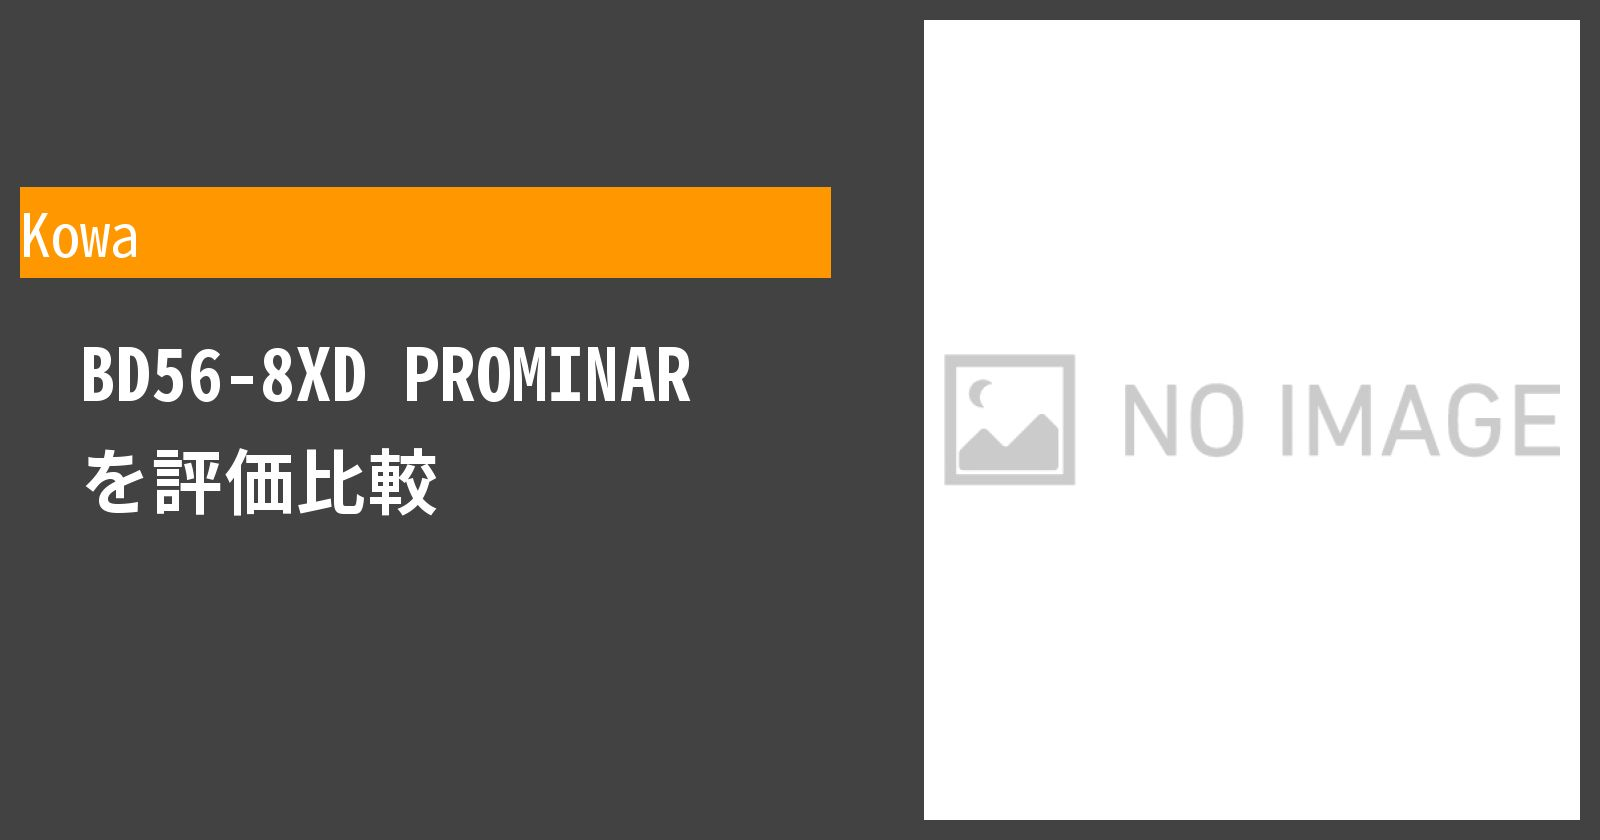 BD56-8XD PROMINARを徹底評価